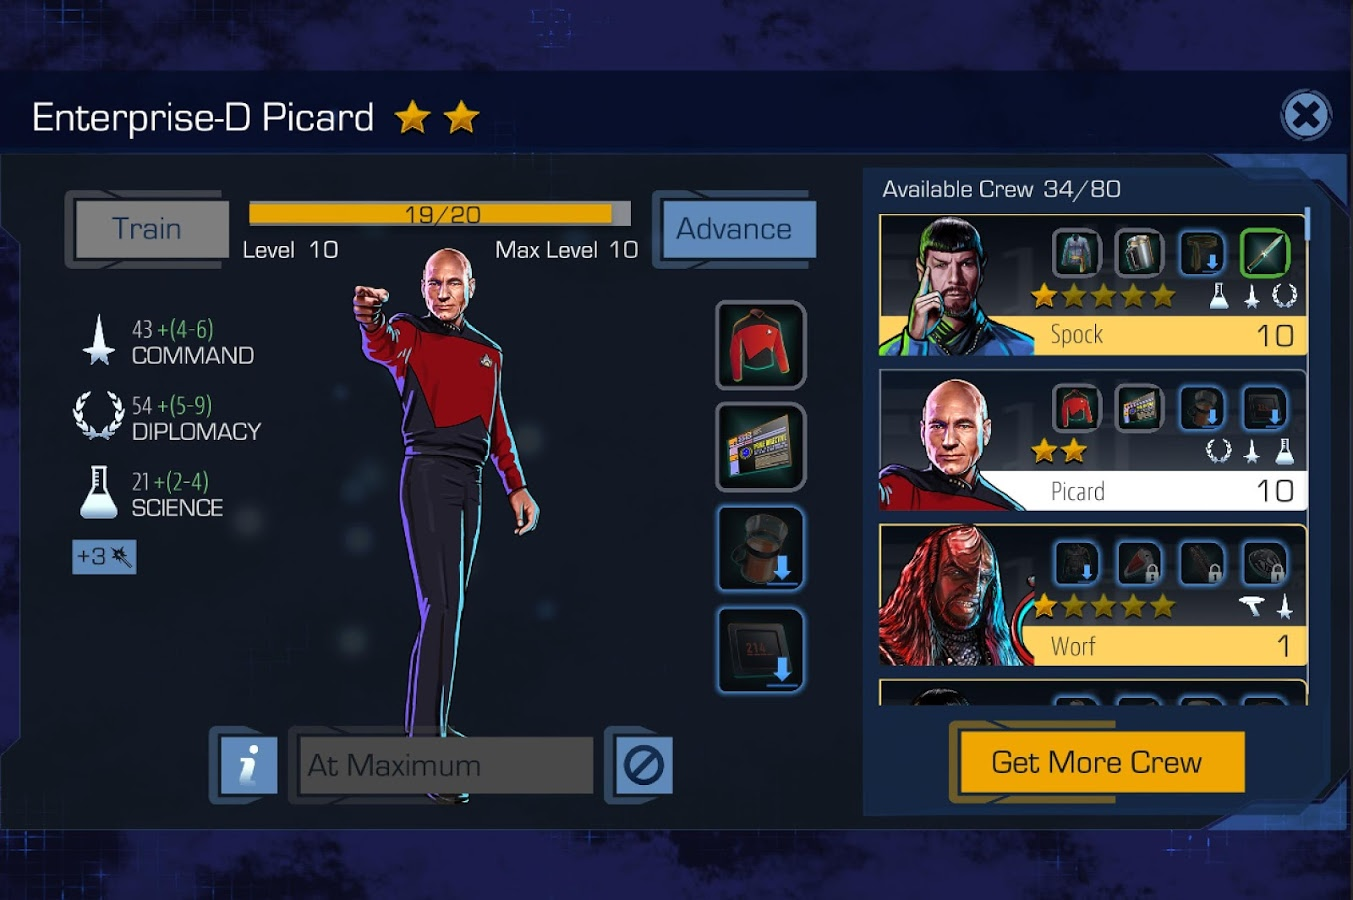 star trek games app